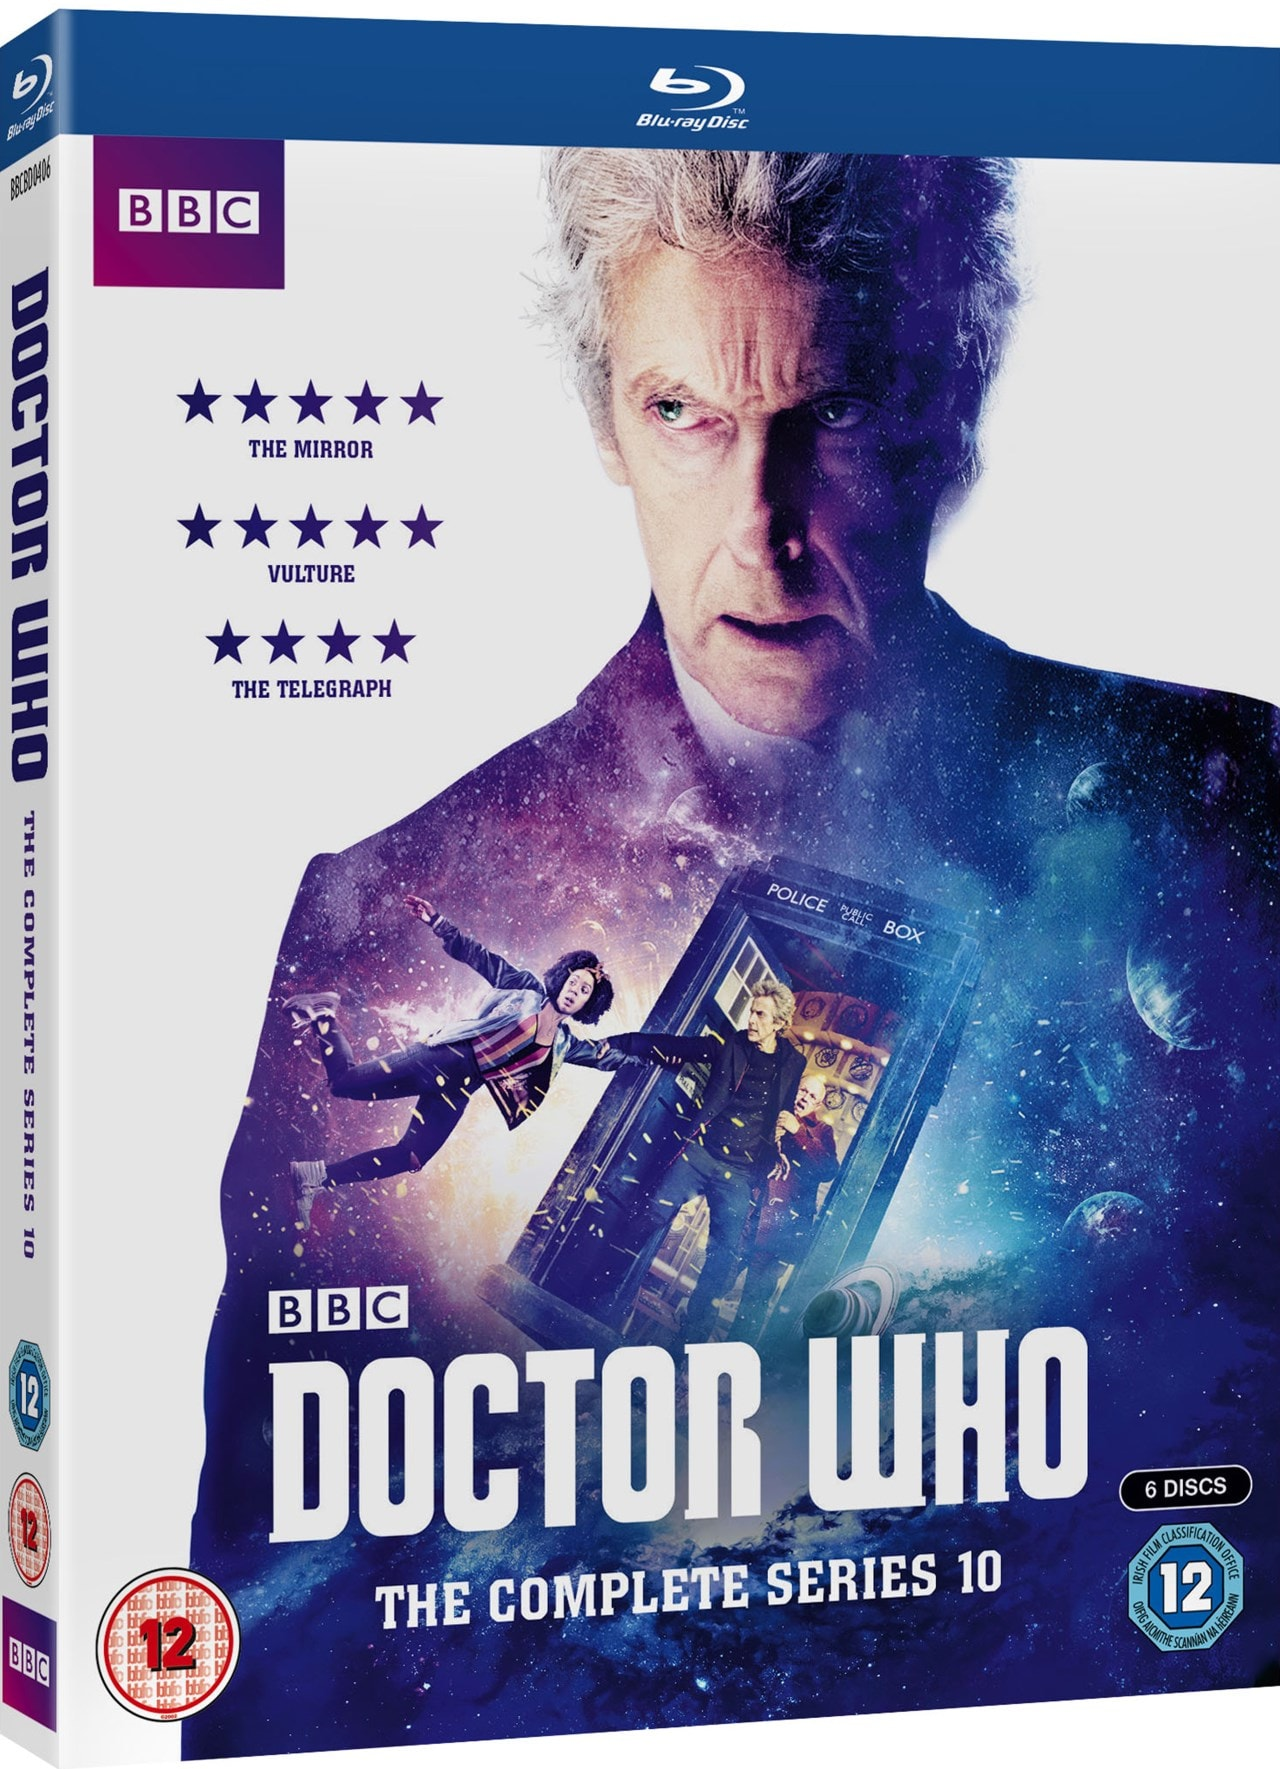 Doctor Who: The Complete Series 10 - 2